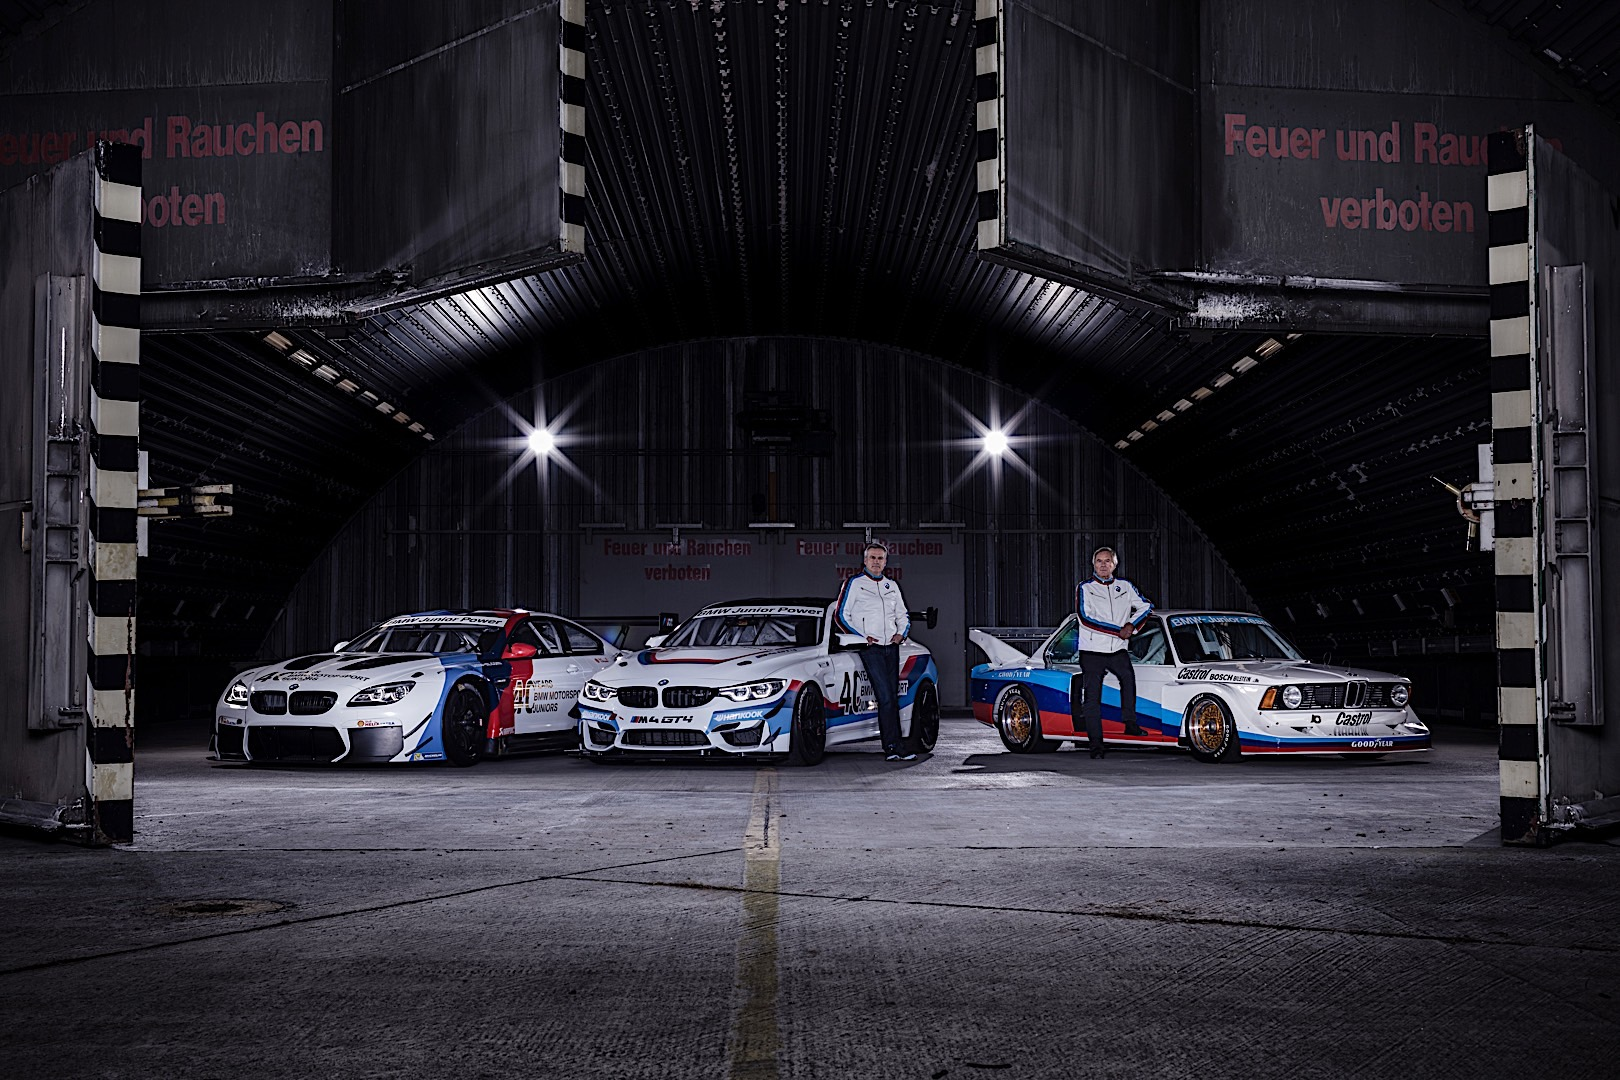 BMW 40 Years of Motorsport11 20 10